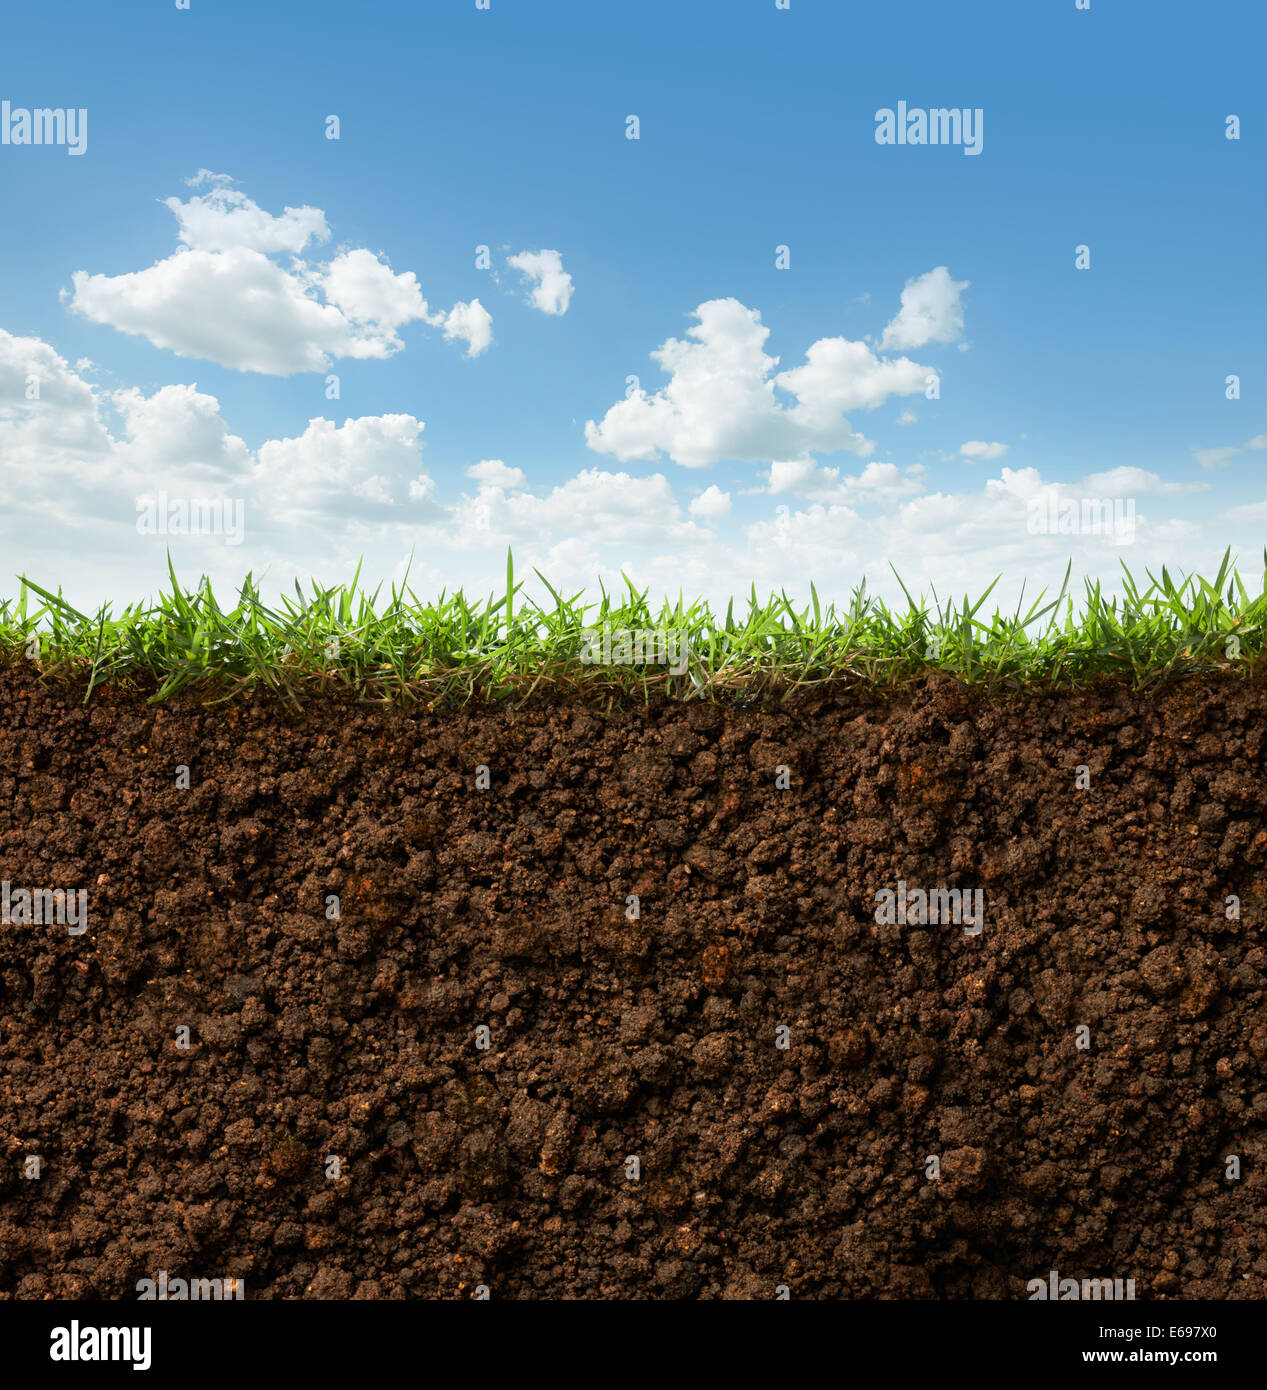 Cross Section Of Grass And Soil Against Blue Sky Stock